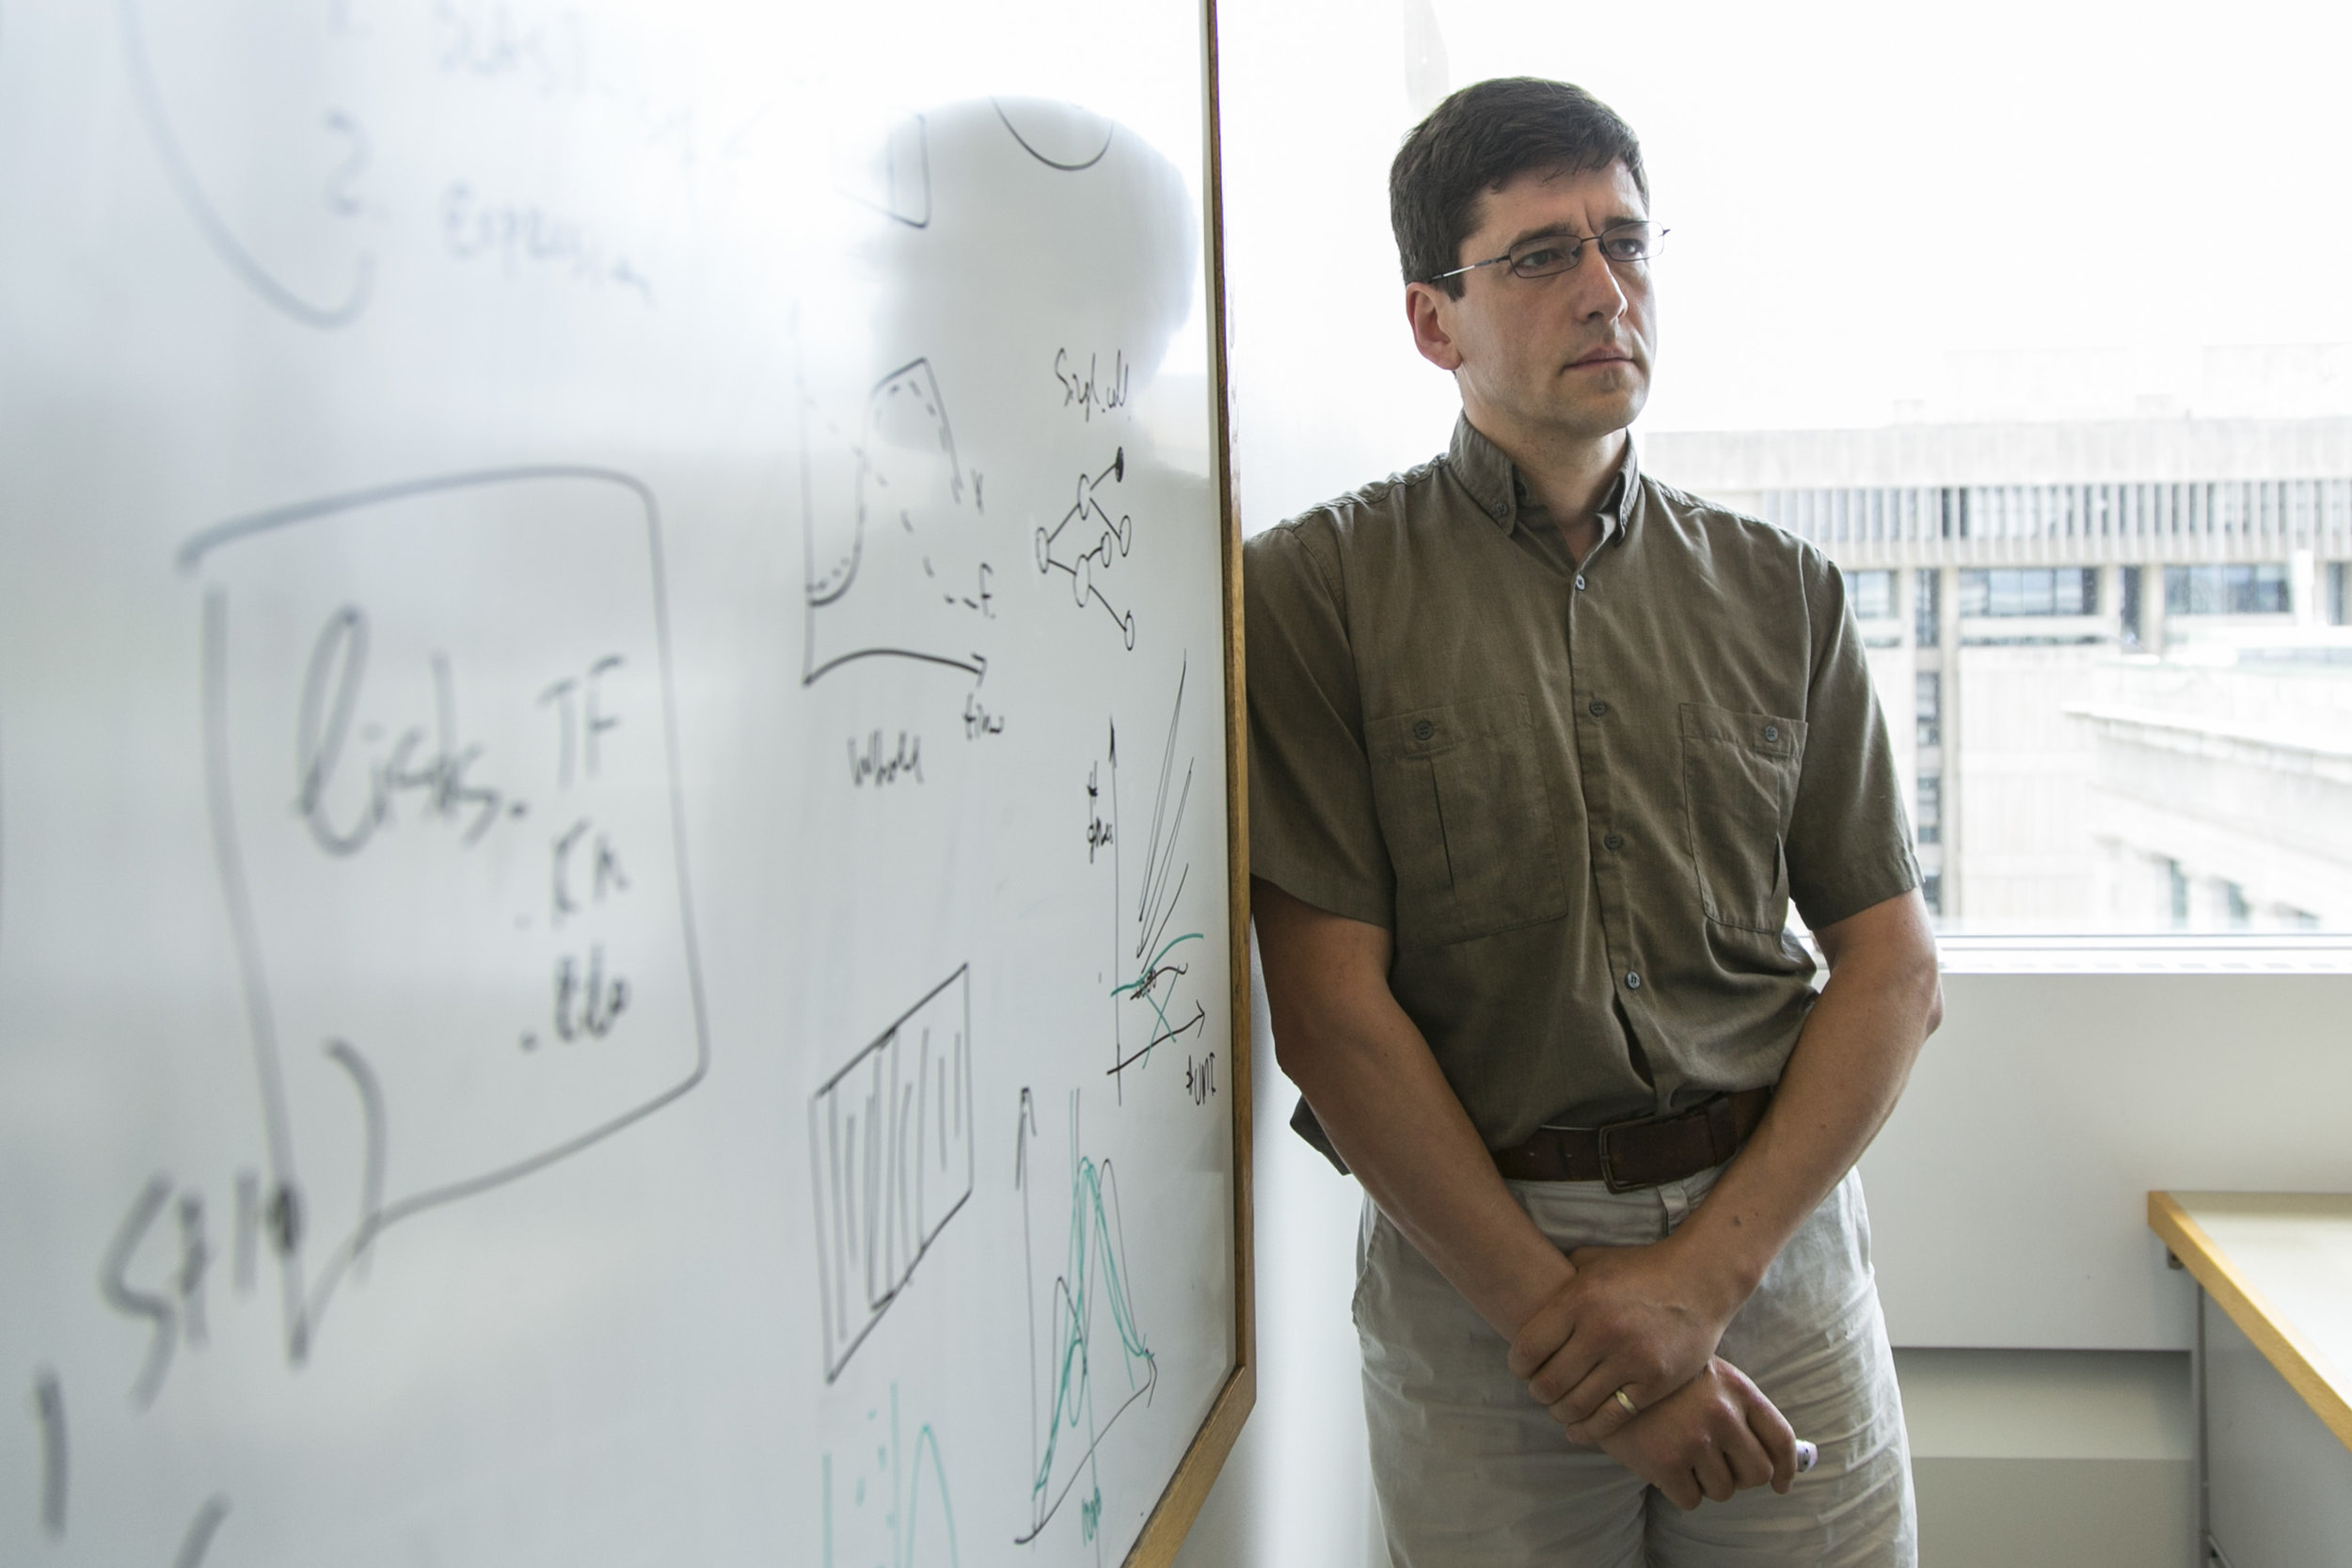 Harvard statistician and geneticist Leon Peshkin poses for a portrait in his office at Harvard Medical School on June 14, 2018. Peshkin's genome will become the reference for labs all over the world.